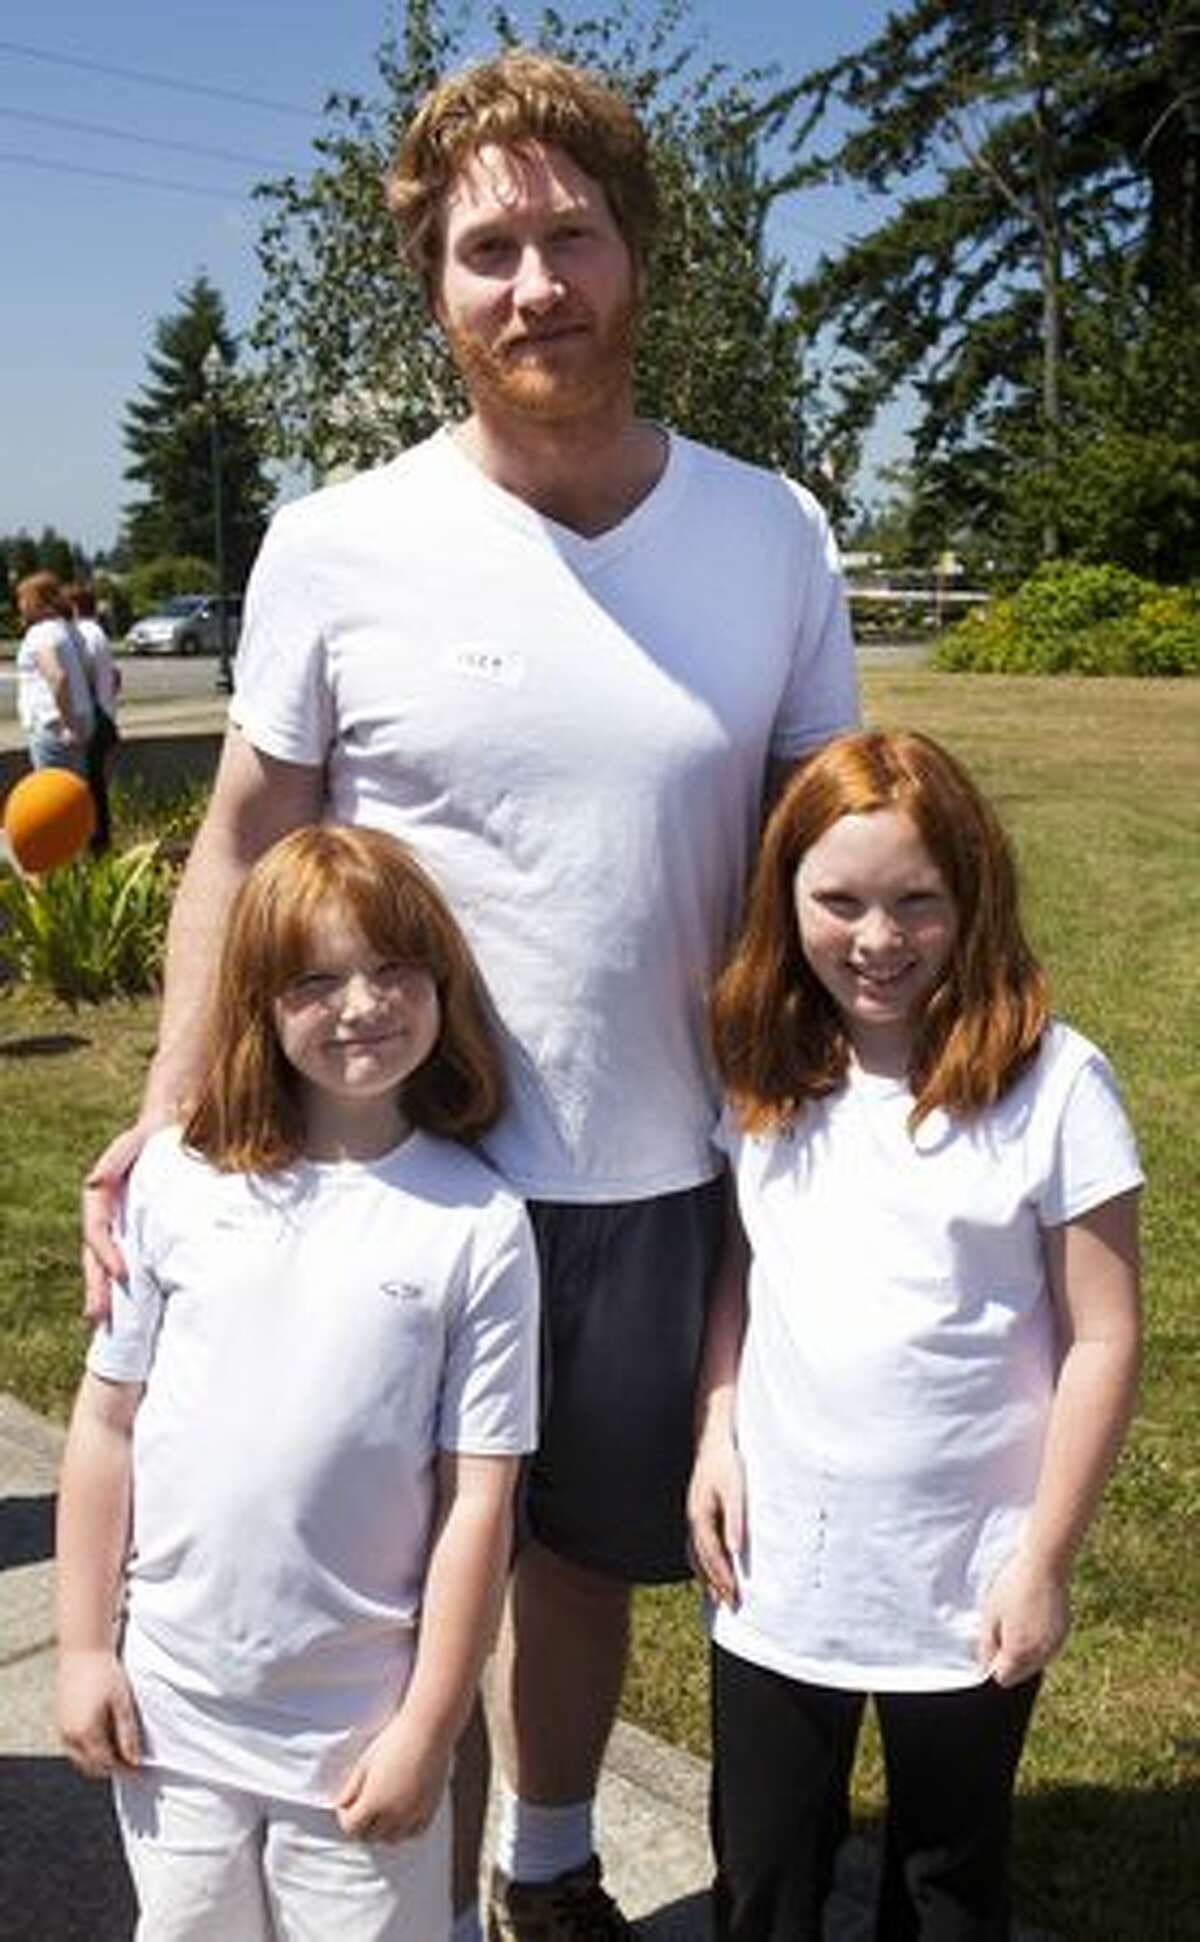 Molly, 7, Megan, 10, and Rob McAdams wait in line for Redheads and More Redheads Day.